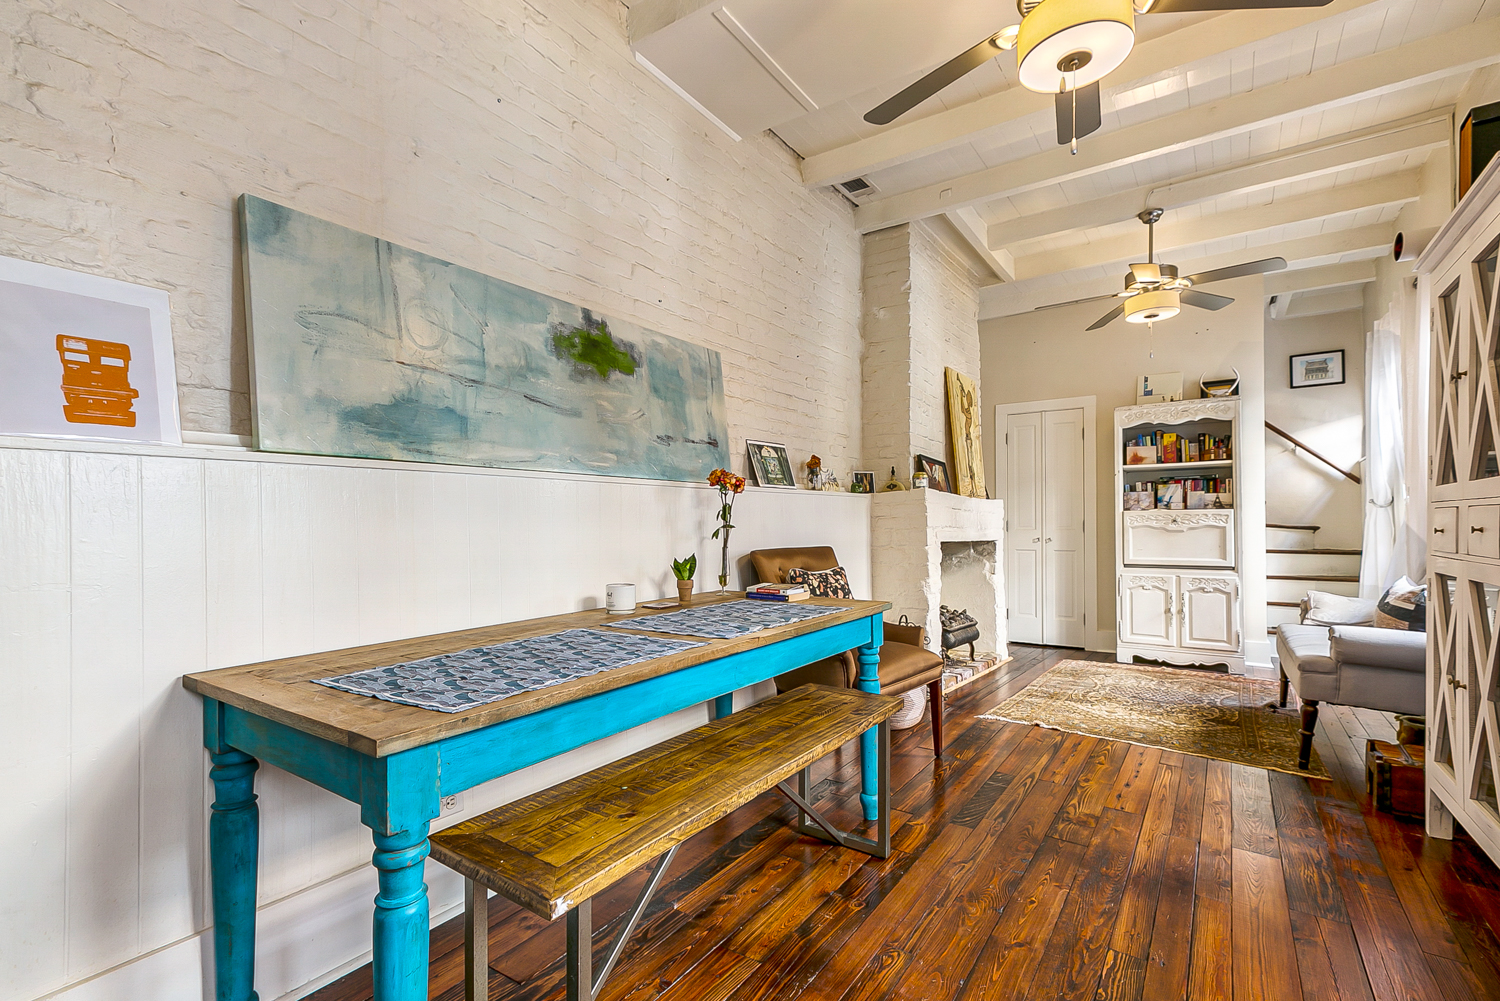 French Quarter, Condo, 1 beds, 2.0 baths, $2400 per month New Orleans Rental - devie image_3